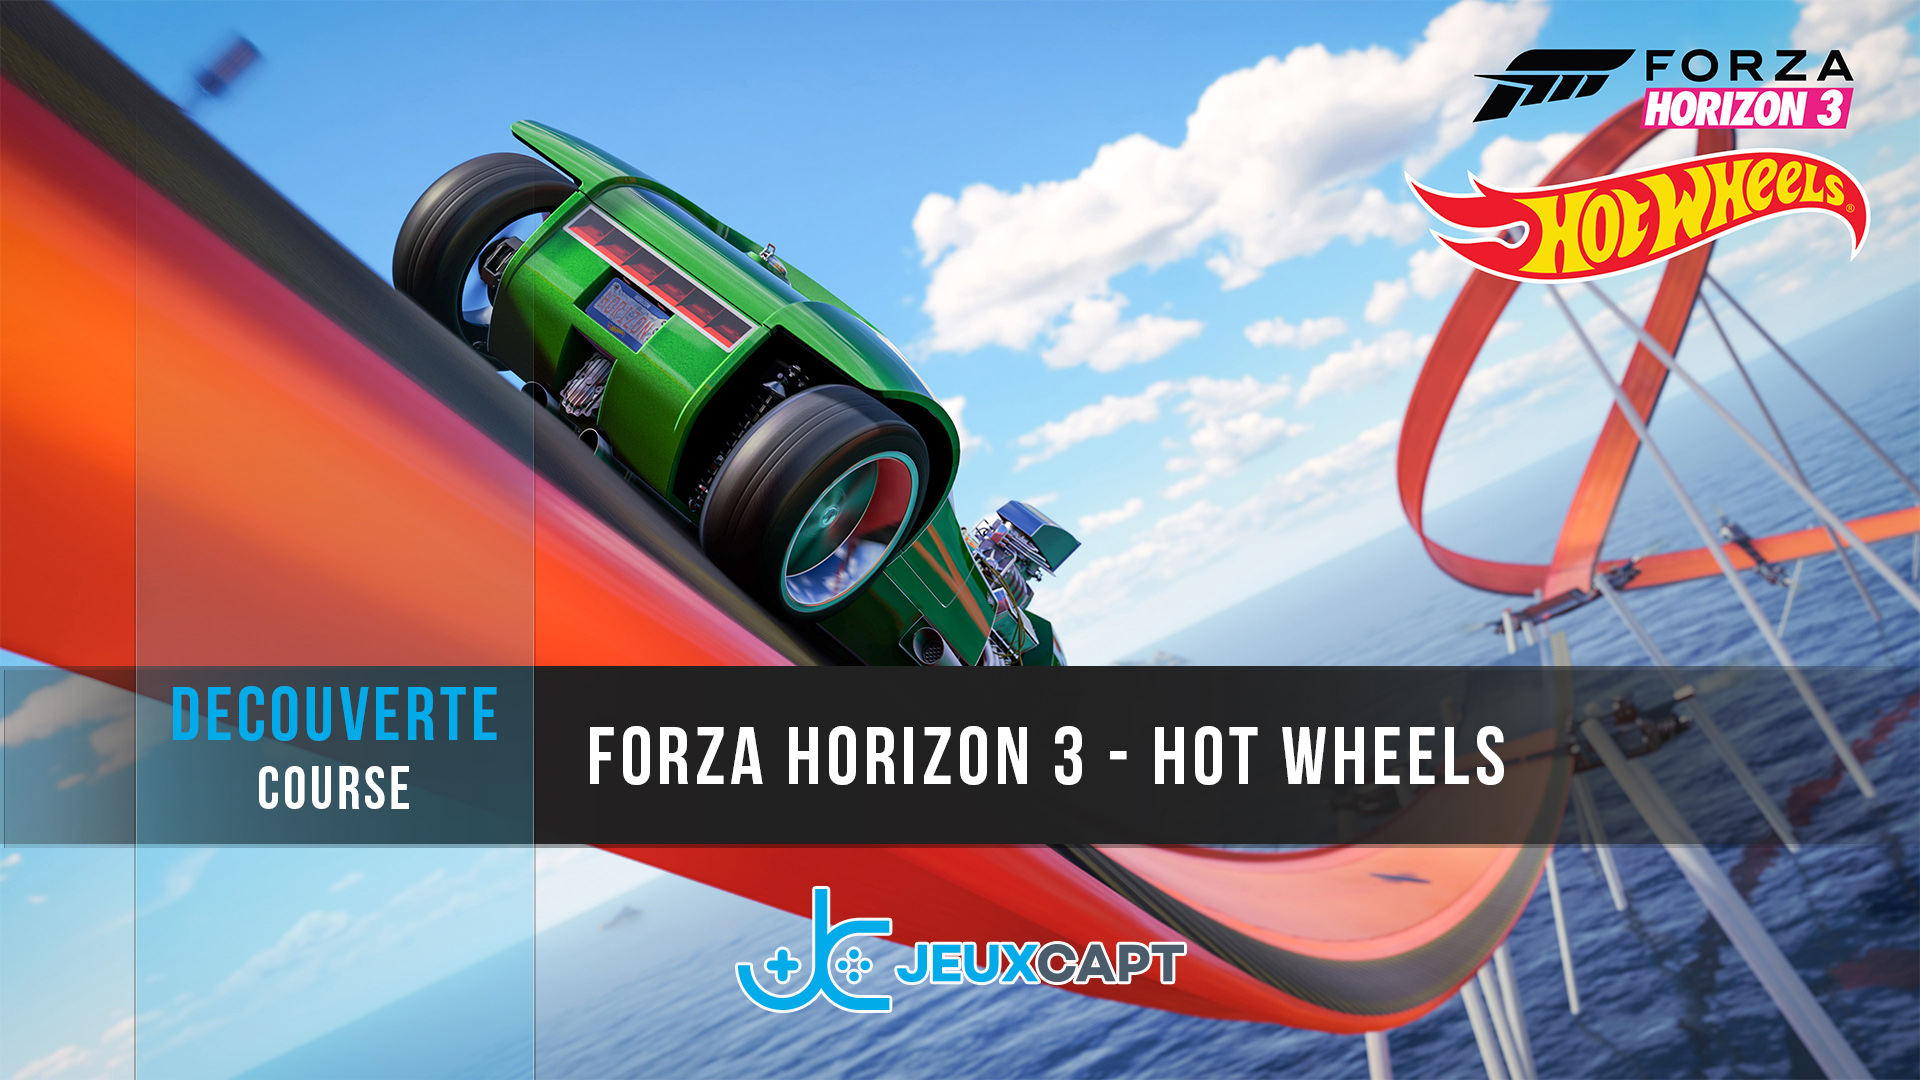 encore plus vite forza horizon 3 hot wheels d couverte koopaskill. Black Bedroom Furniture Sets. Home Design Ideas